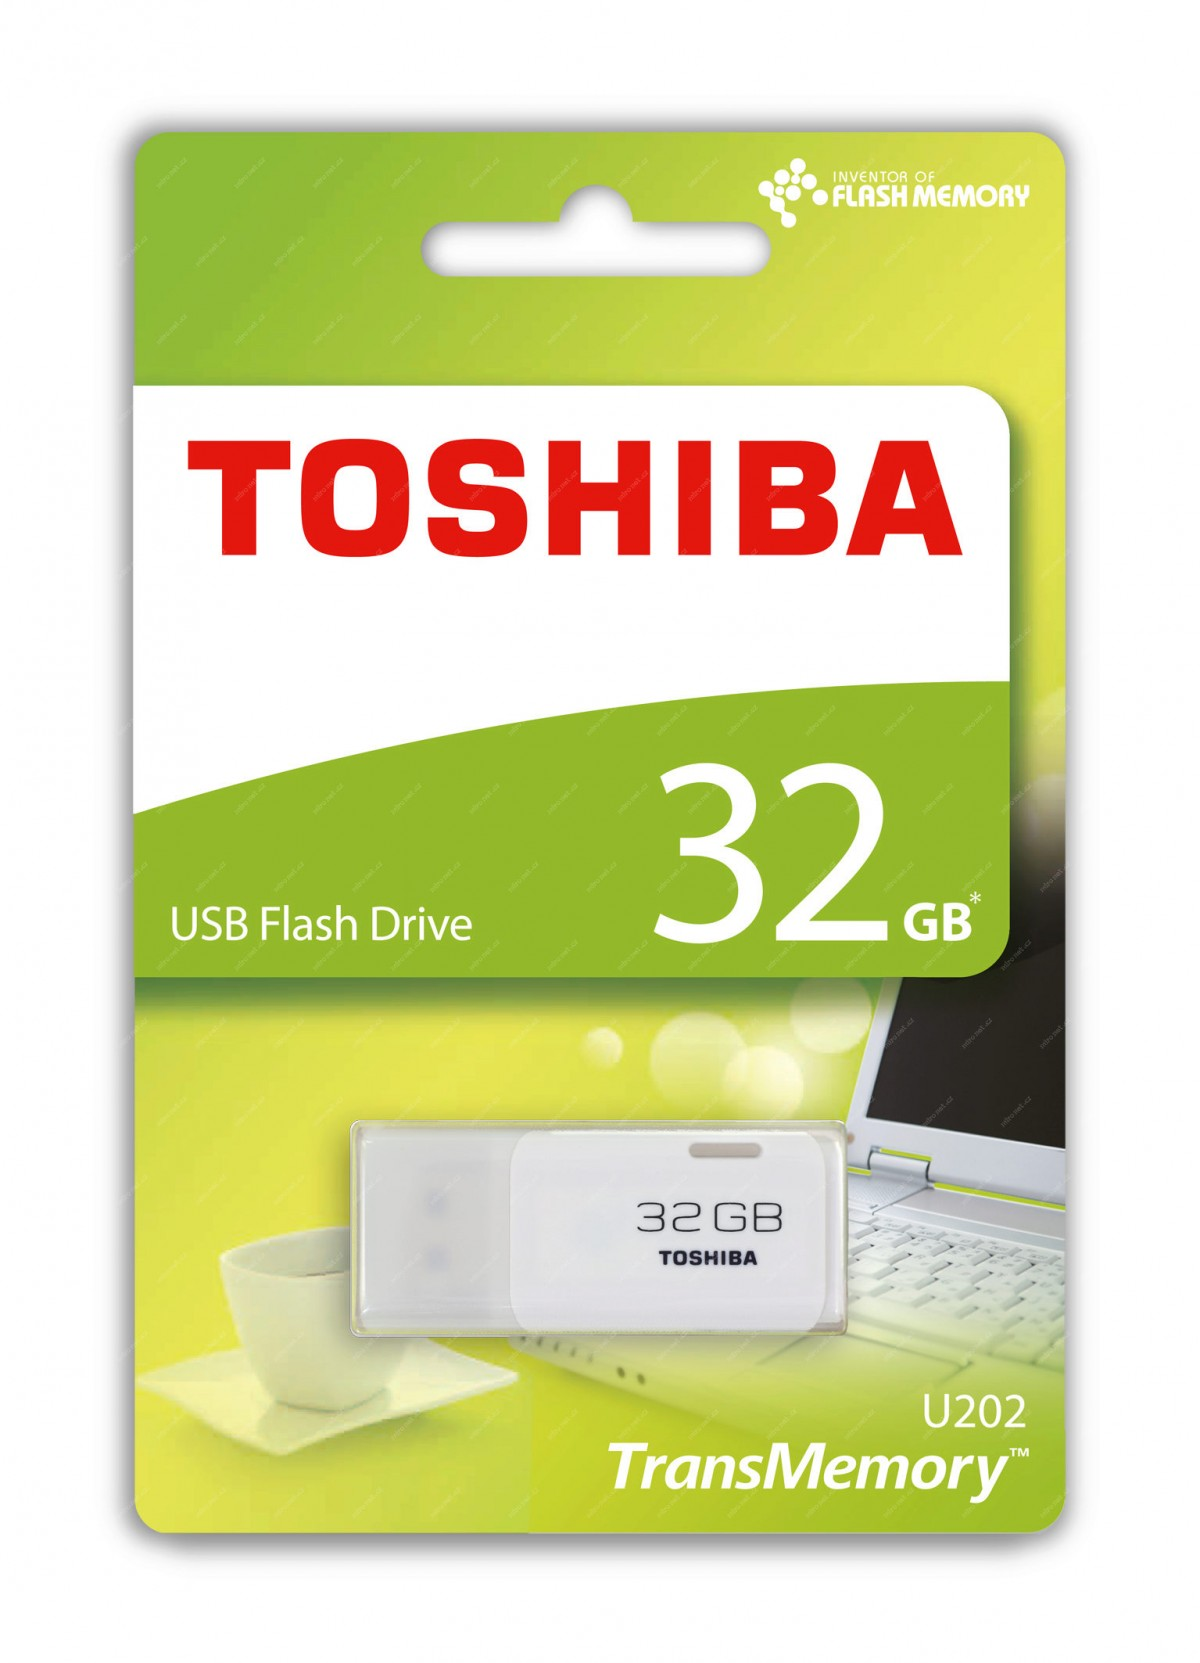 TOSHIBA 32GB Flash disk USB 2.0 U202 THN-U202W0320E4